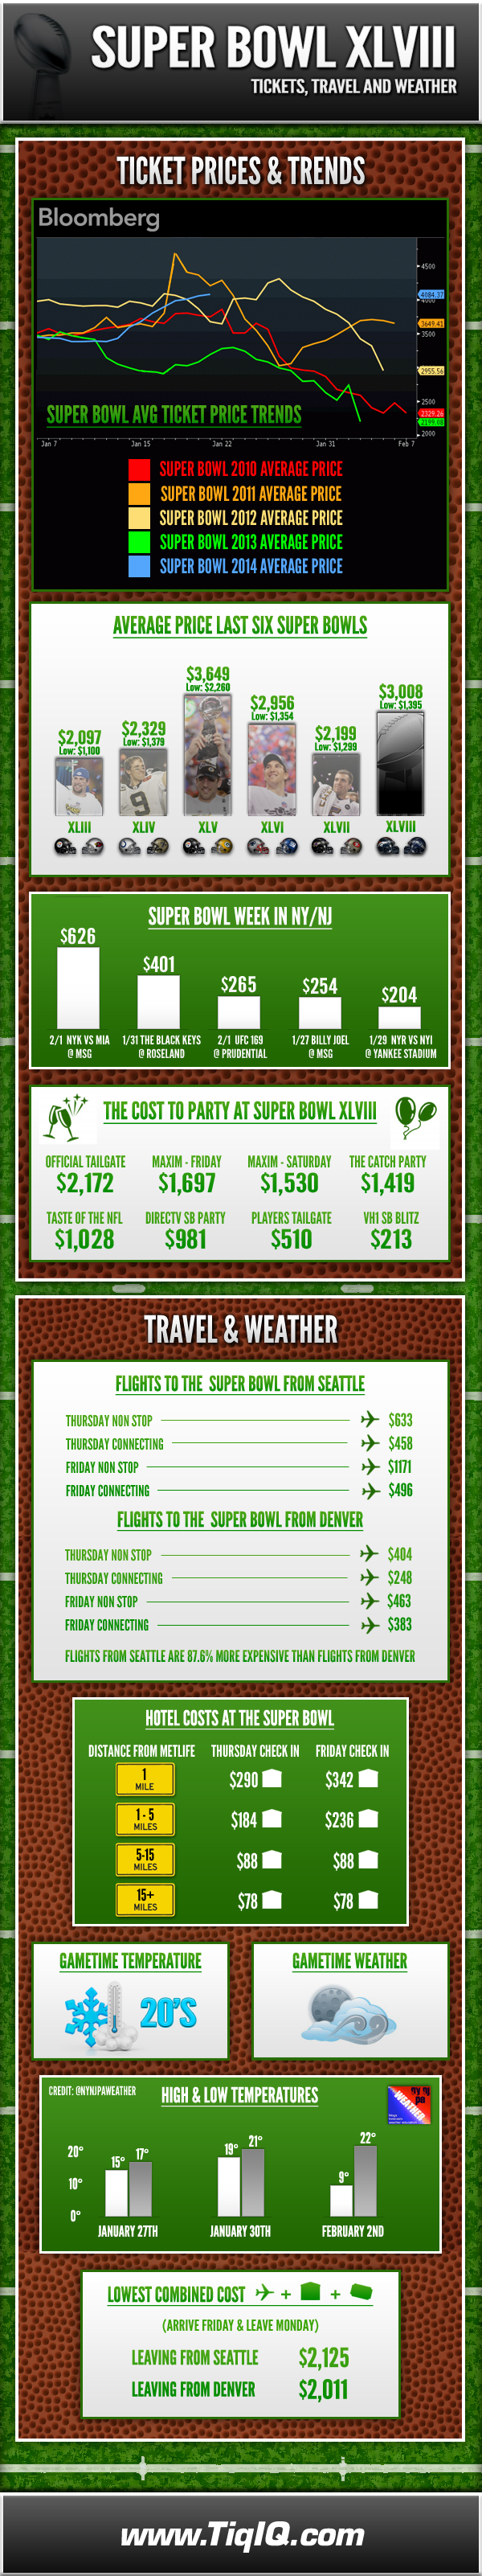 Super-Bowl-XLVIII-Infographic